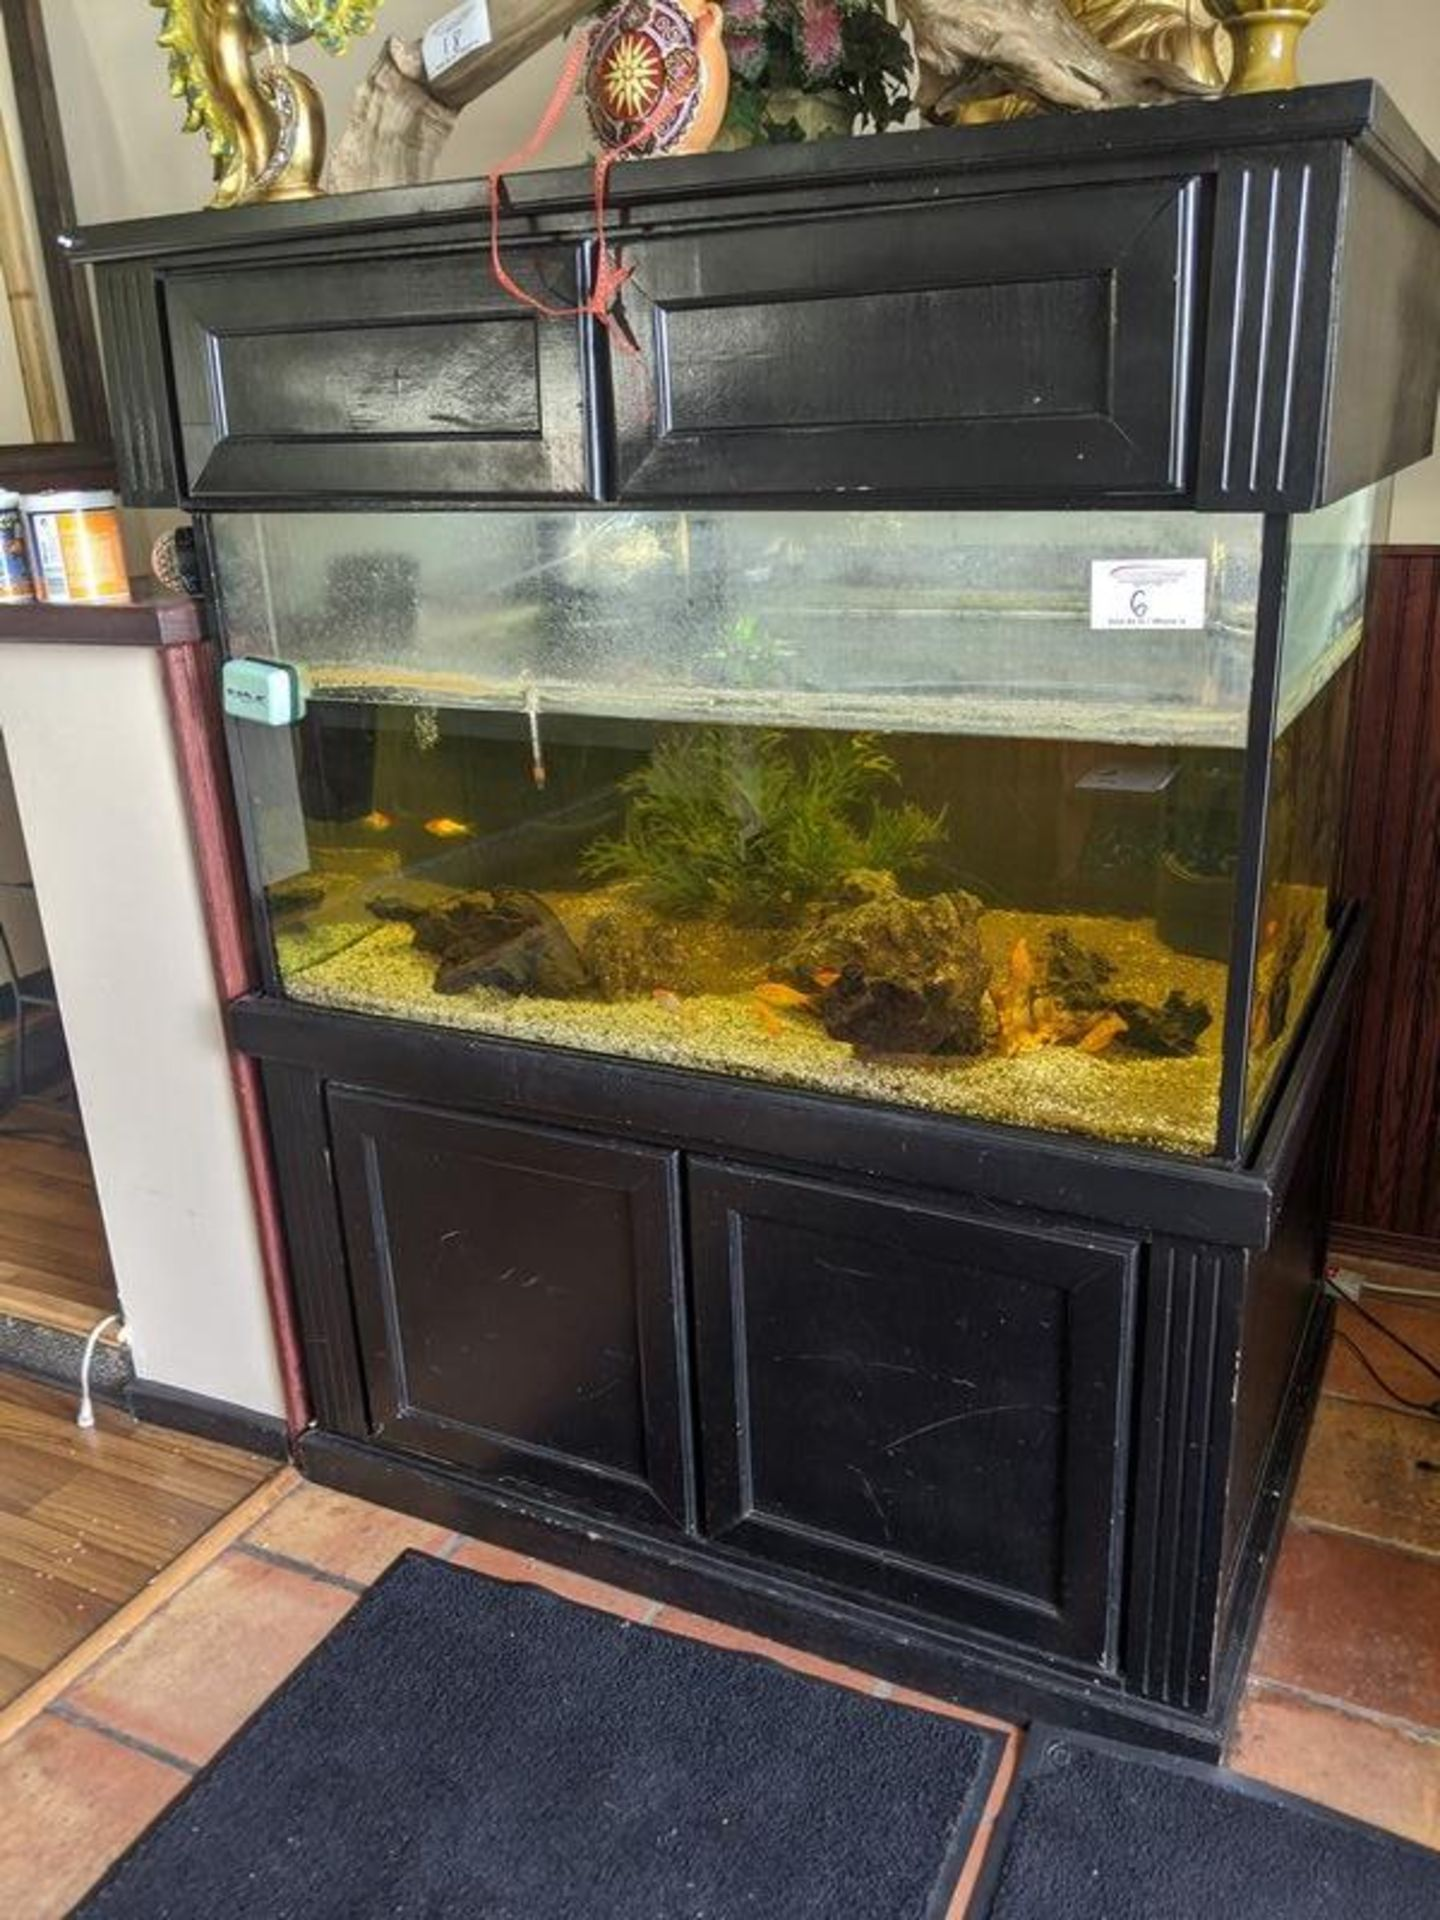 Lot 6 - Large Fish Tank with Pumps and Filters